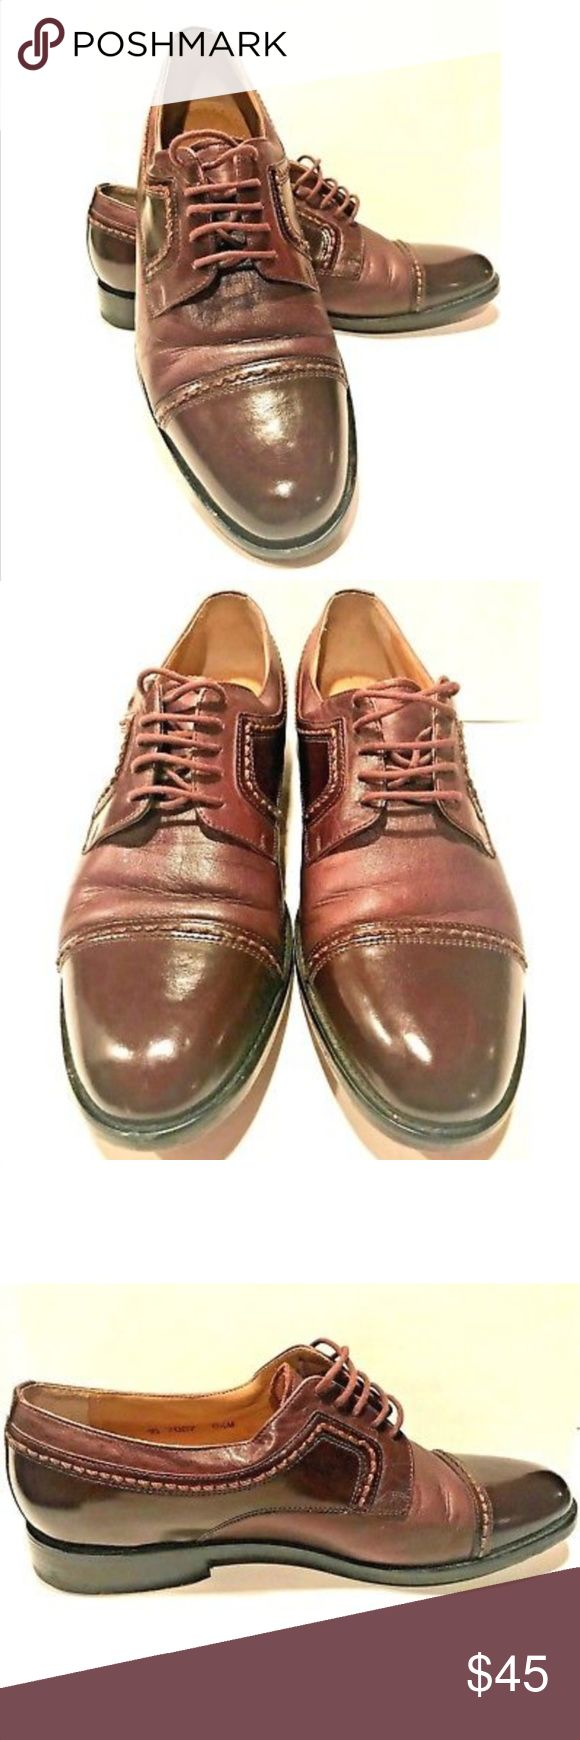 Johnston & Murphy Pantera Lace-Up CapToe Men Shoes Johnston & Murphy Pantera Lace-Up Cap Toe Men Shoes   Color: Plum  Size: Men's 8.5 M  Fabric: Leather  Made: Brazil  *Please Note* These shoes were pre-owned. On the last two pictures shows slight scuffing on the toe of the shoe and the tongue; as well as, a little bit of thread missing on the tongue. Other pictures show slight bending of the leather at the opening of the shoe. The shoe, itself, is still in good condition. Johnston & Murphy…